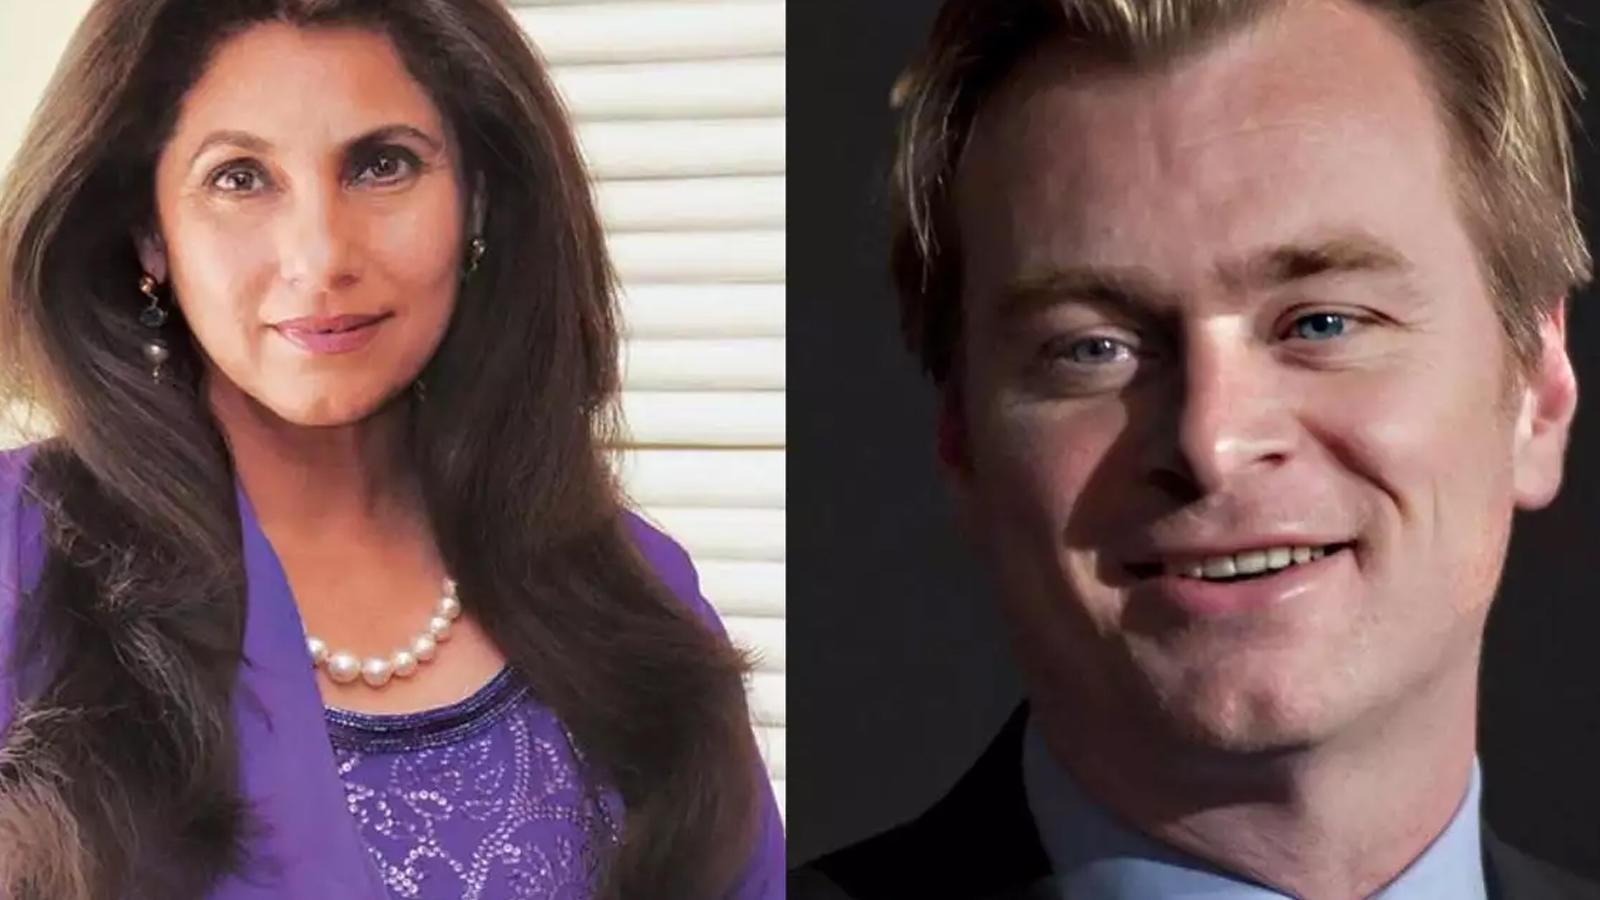 Dimple Kapadia gets role in Christopher Nolan's film, Bollywood congratulates her